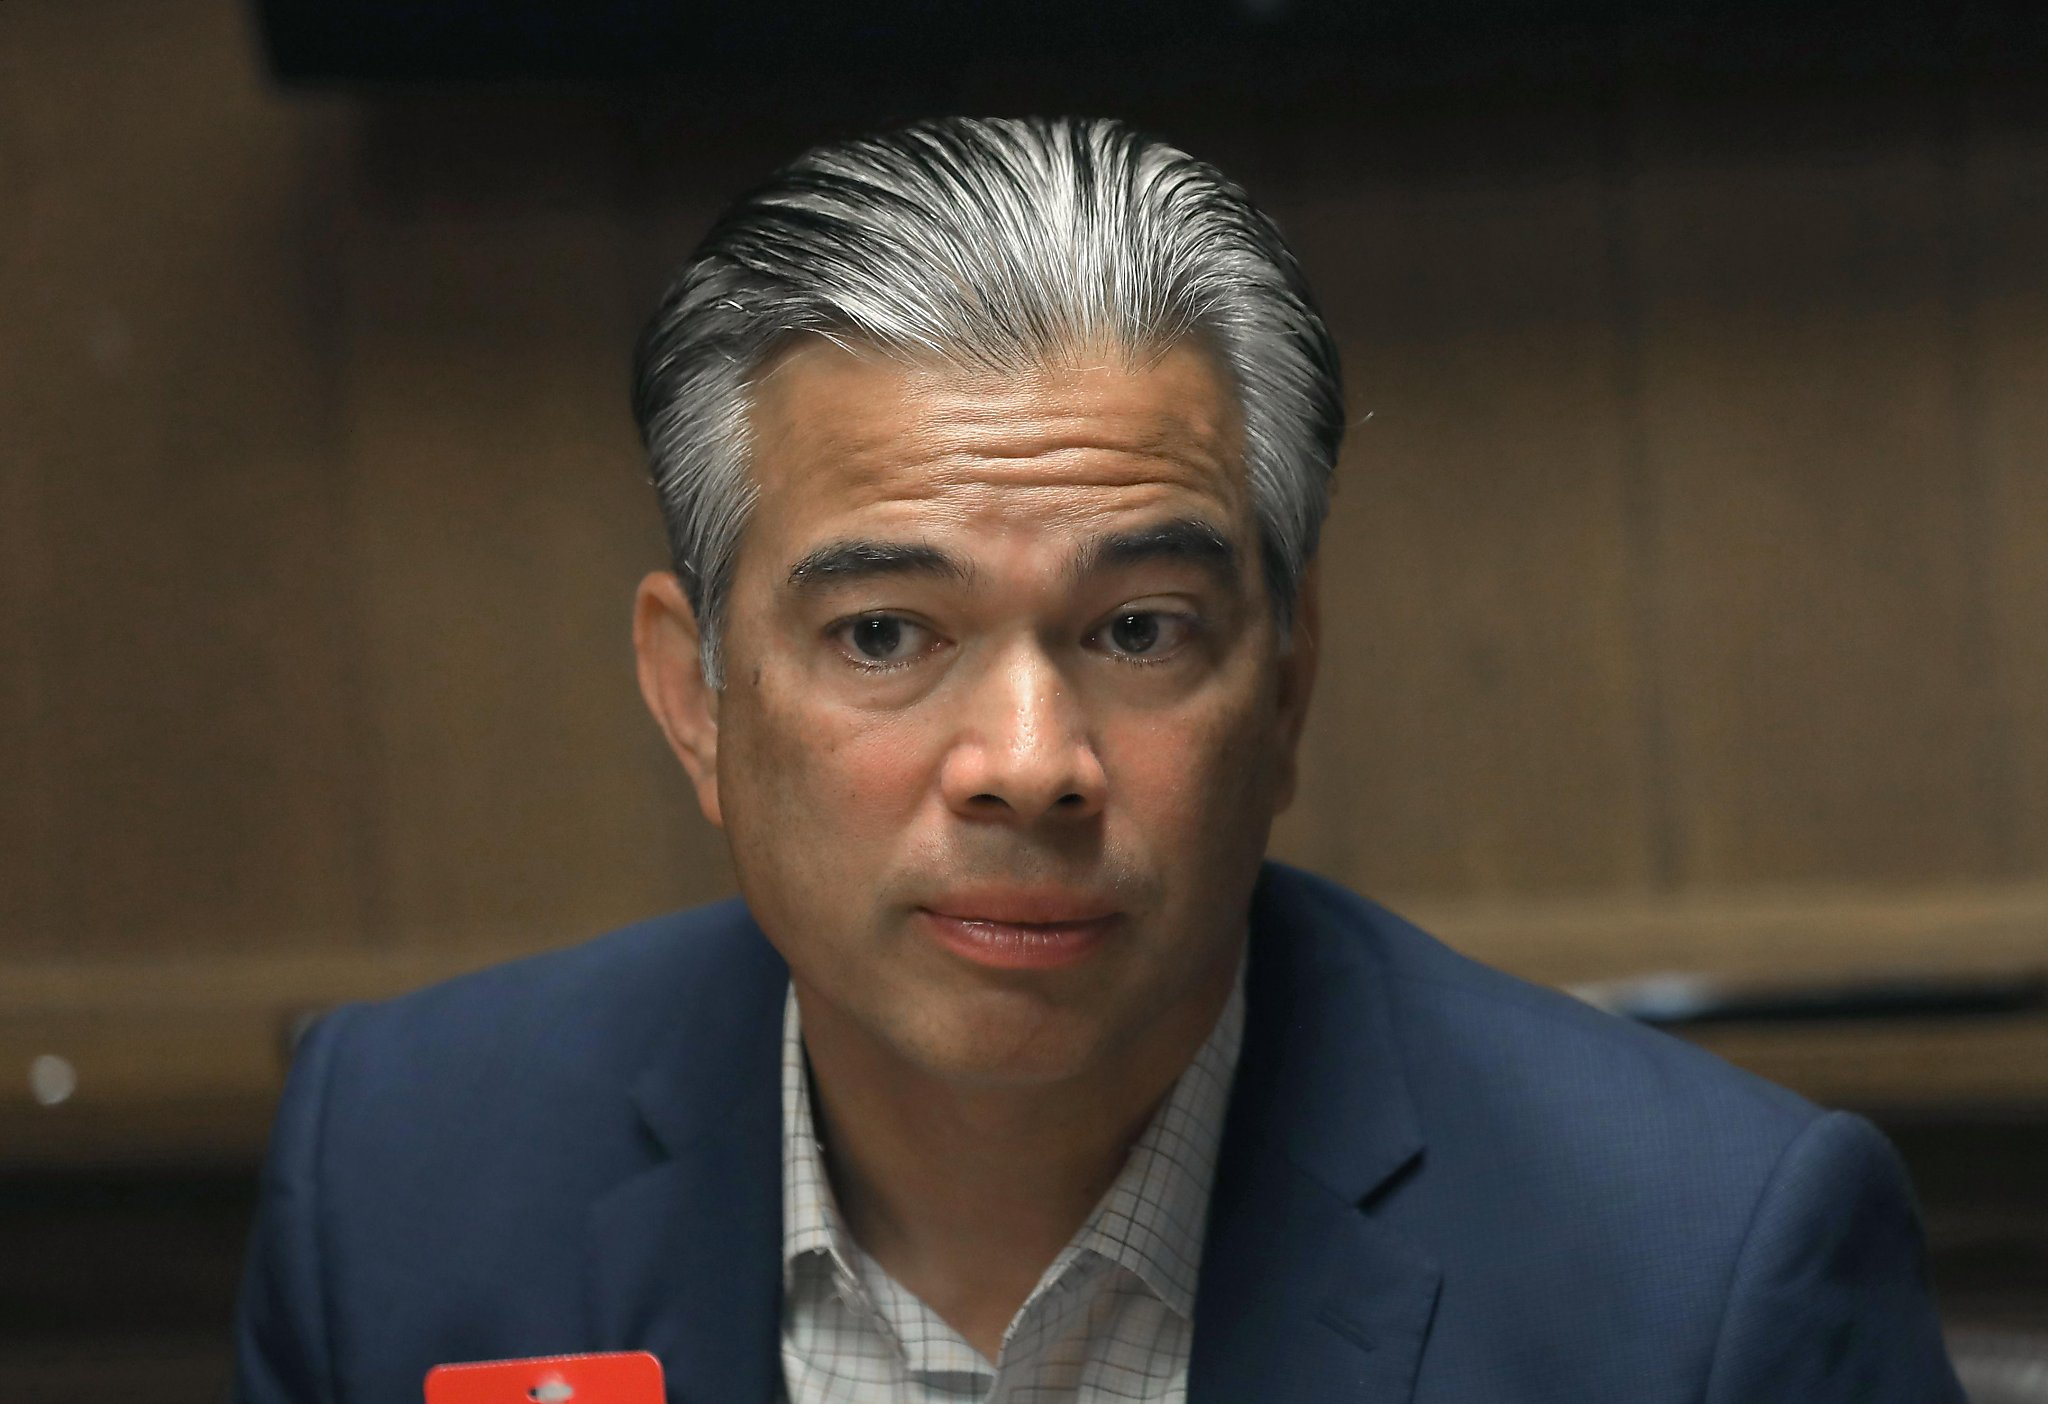 www.sfchronicle.com: Asian American leaders look to Rob Bonta to lead on fighting hate crimes